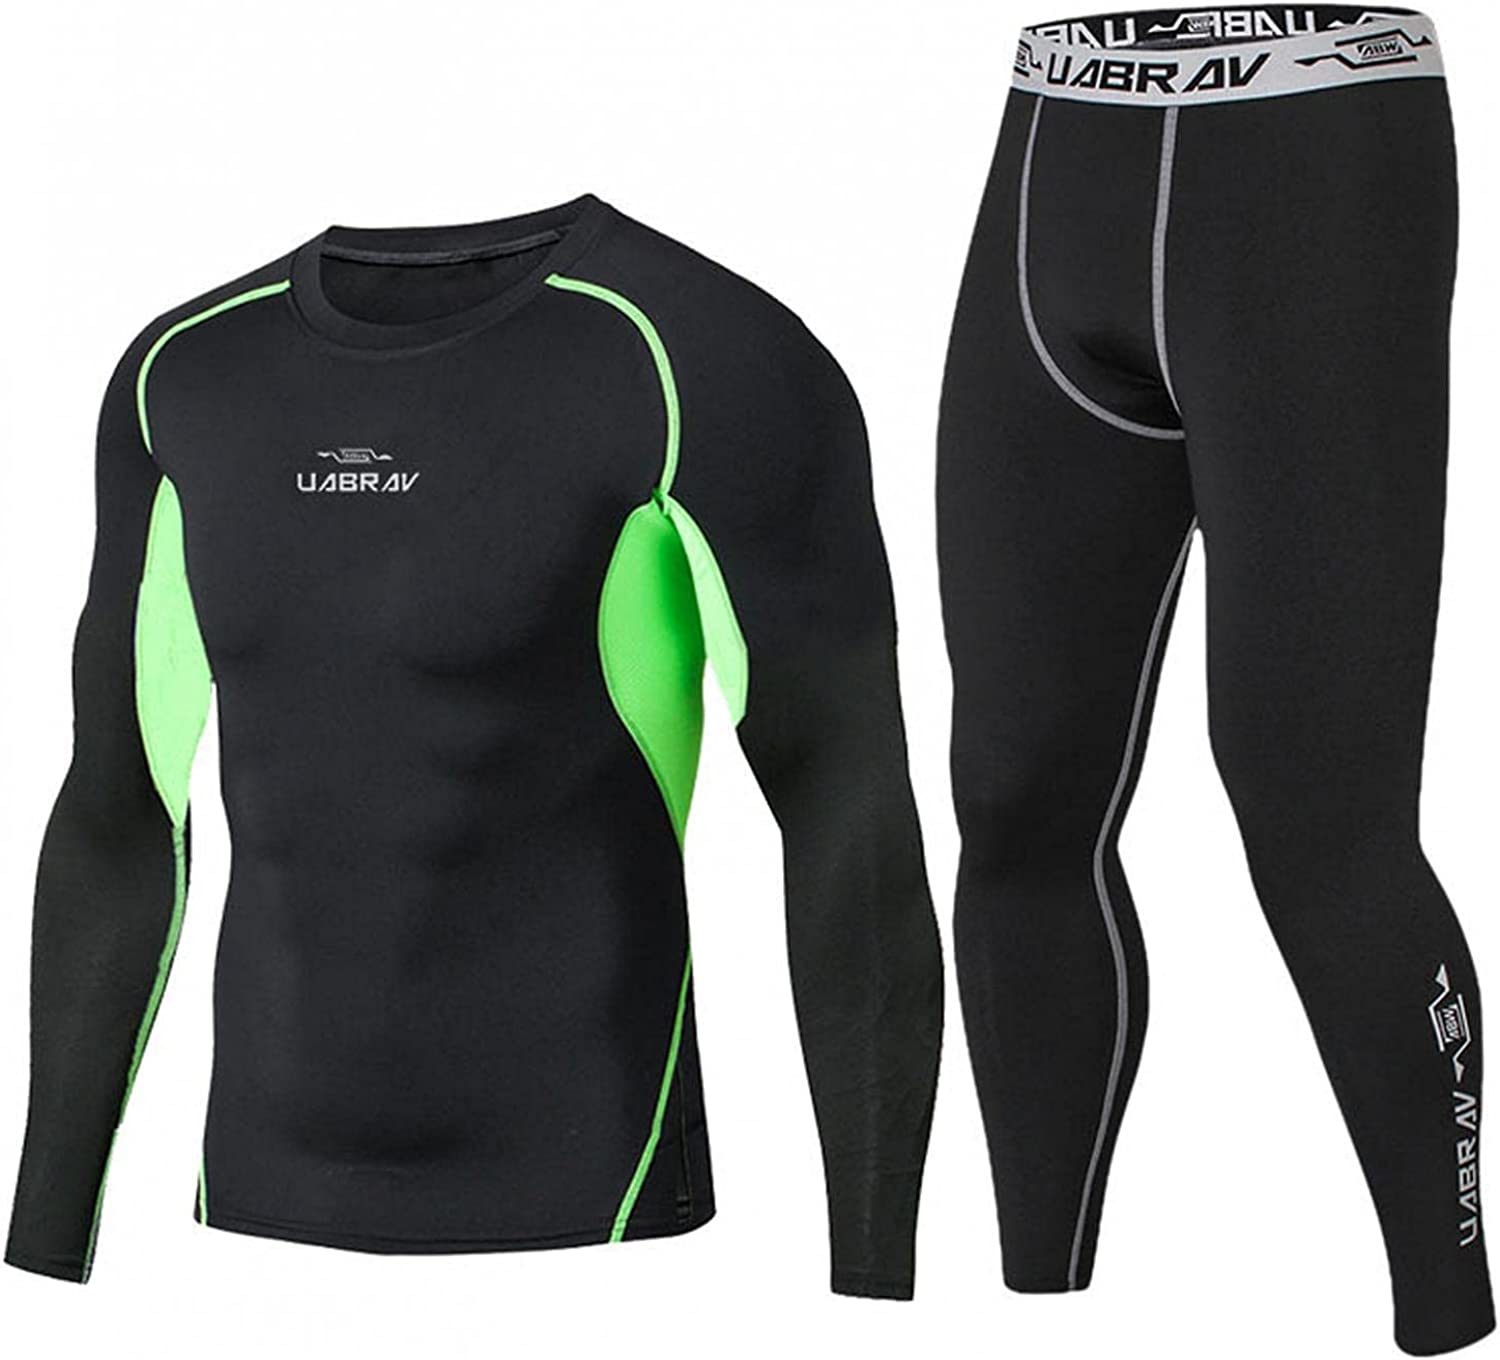 Men's 2 Piece Fitness Tracksuits Workout Compression Shirt & Long Tights Leggings Outfit Gym Running Dry Fit Sport Set